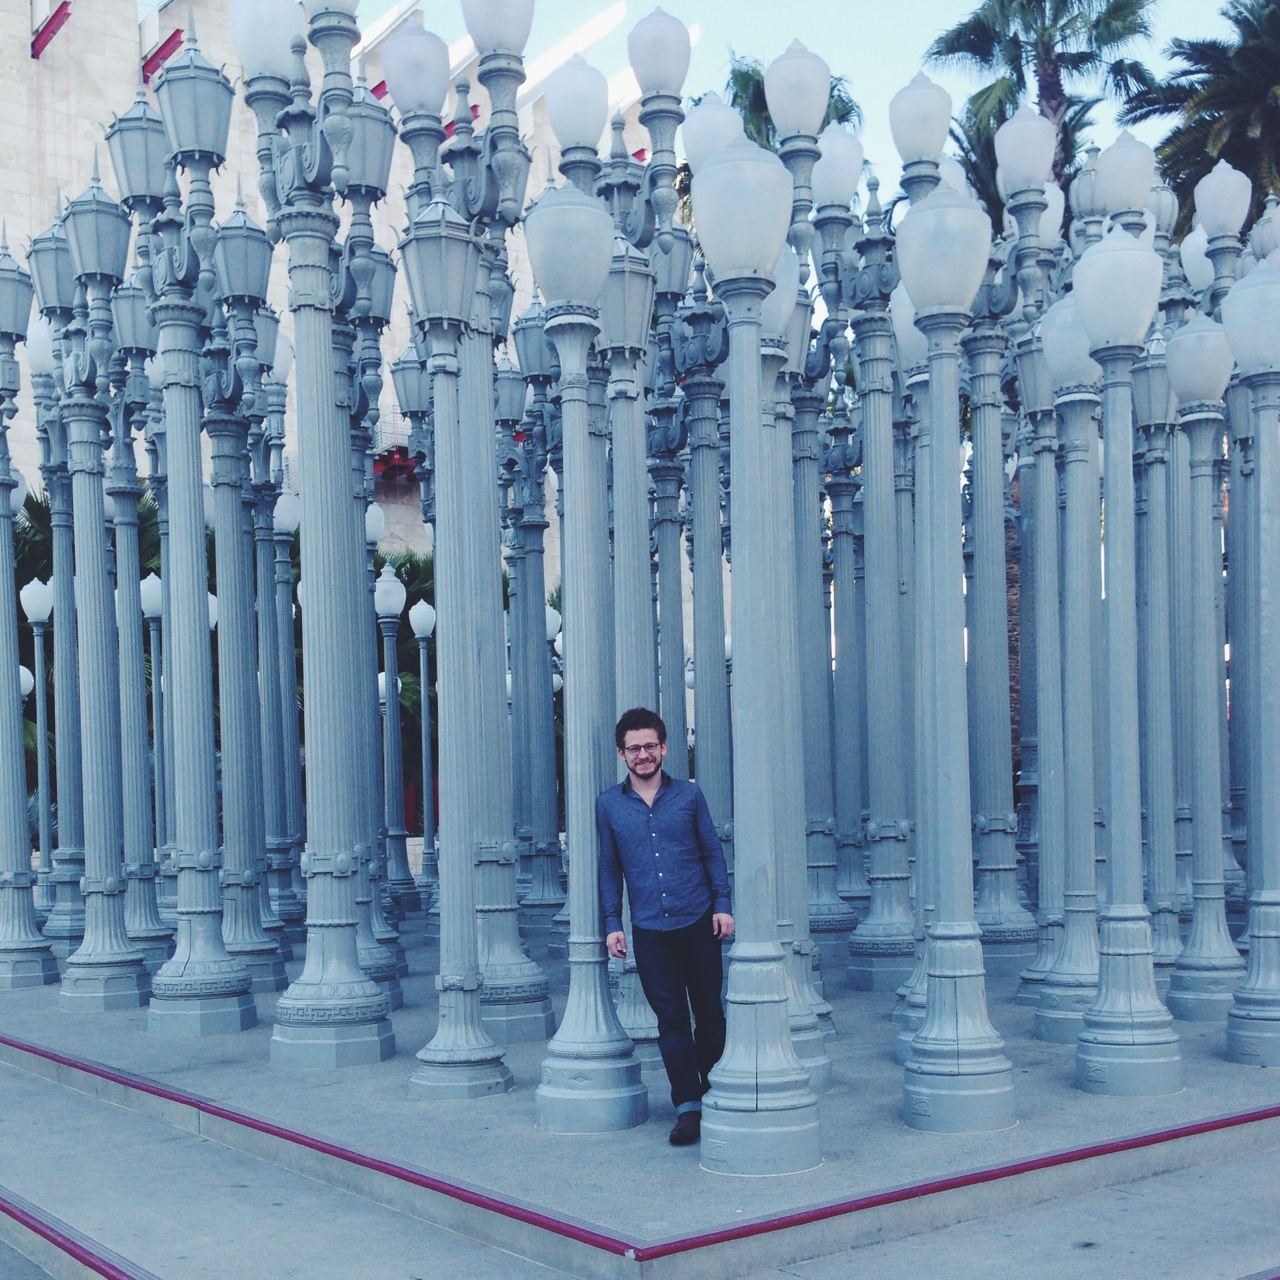 Obligatory Burden portrait at LACMA.